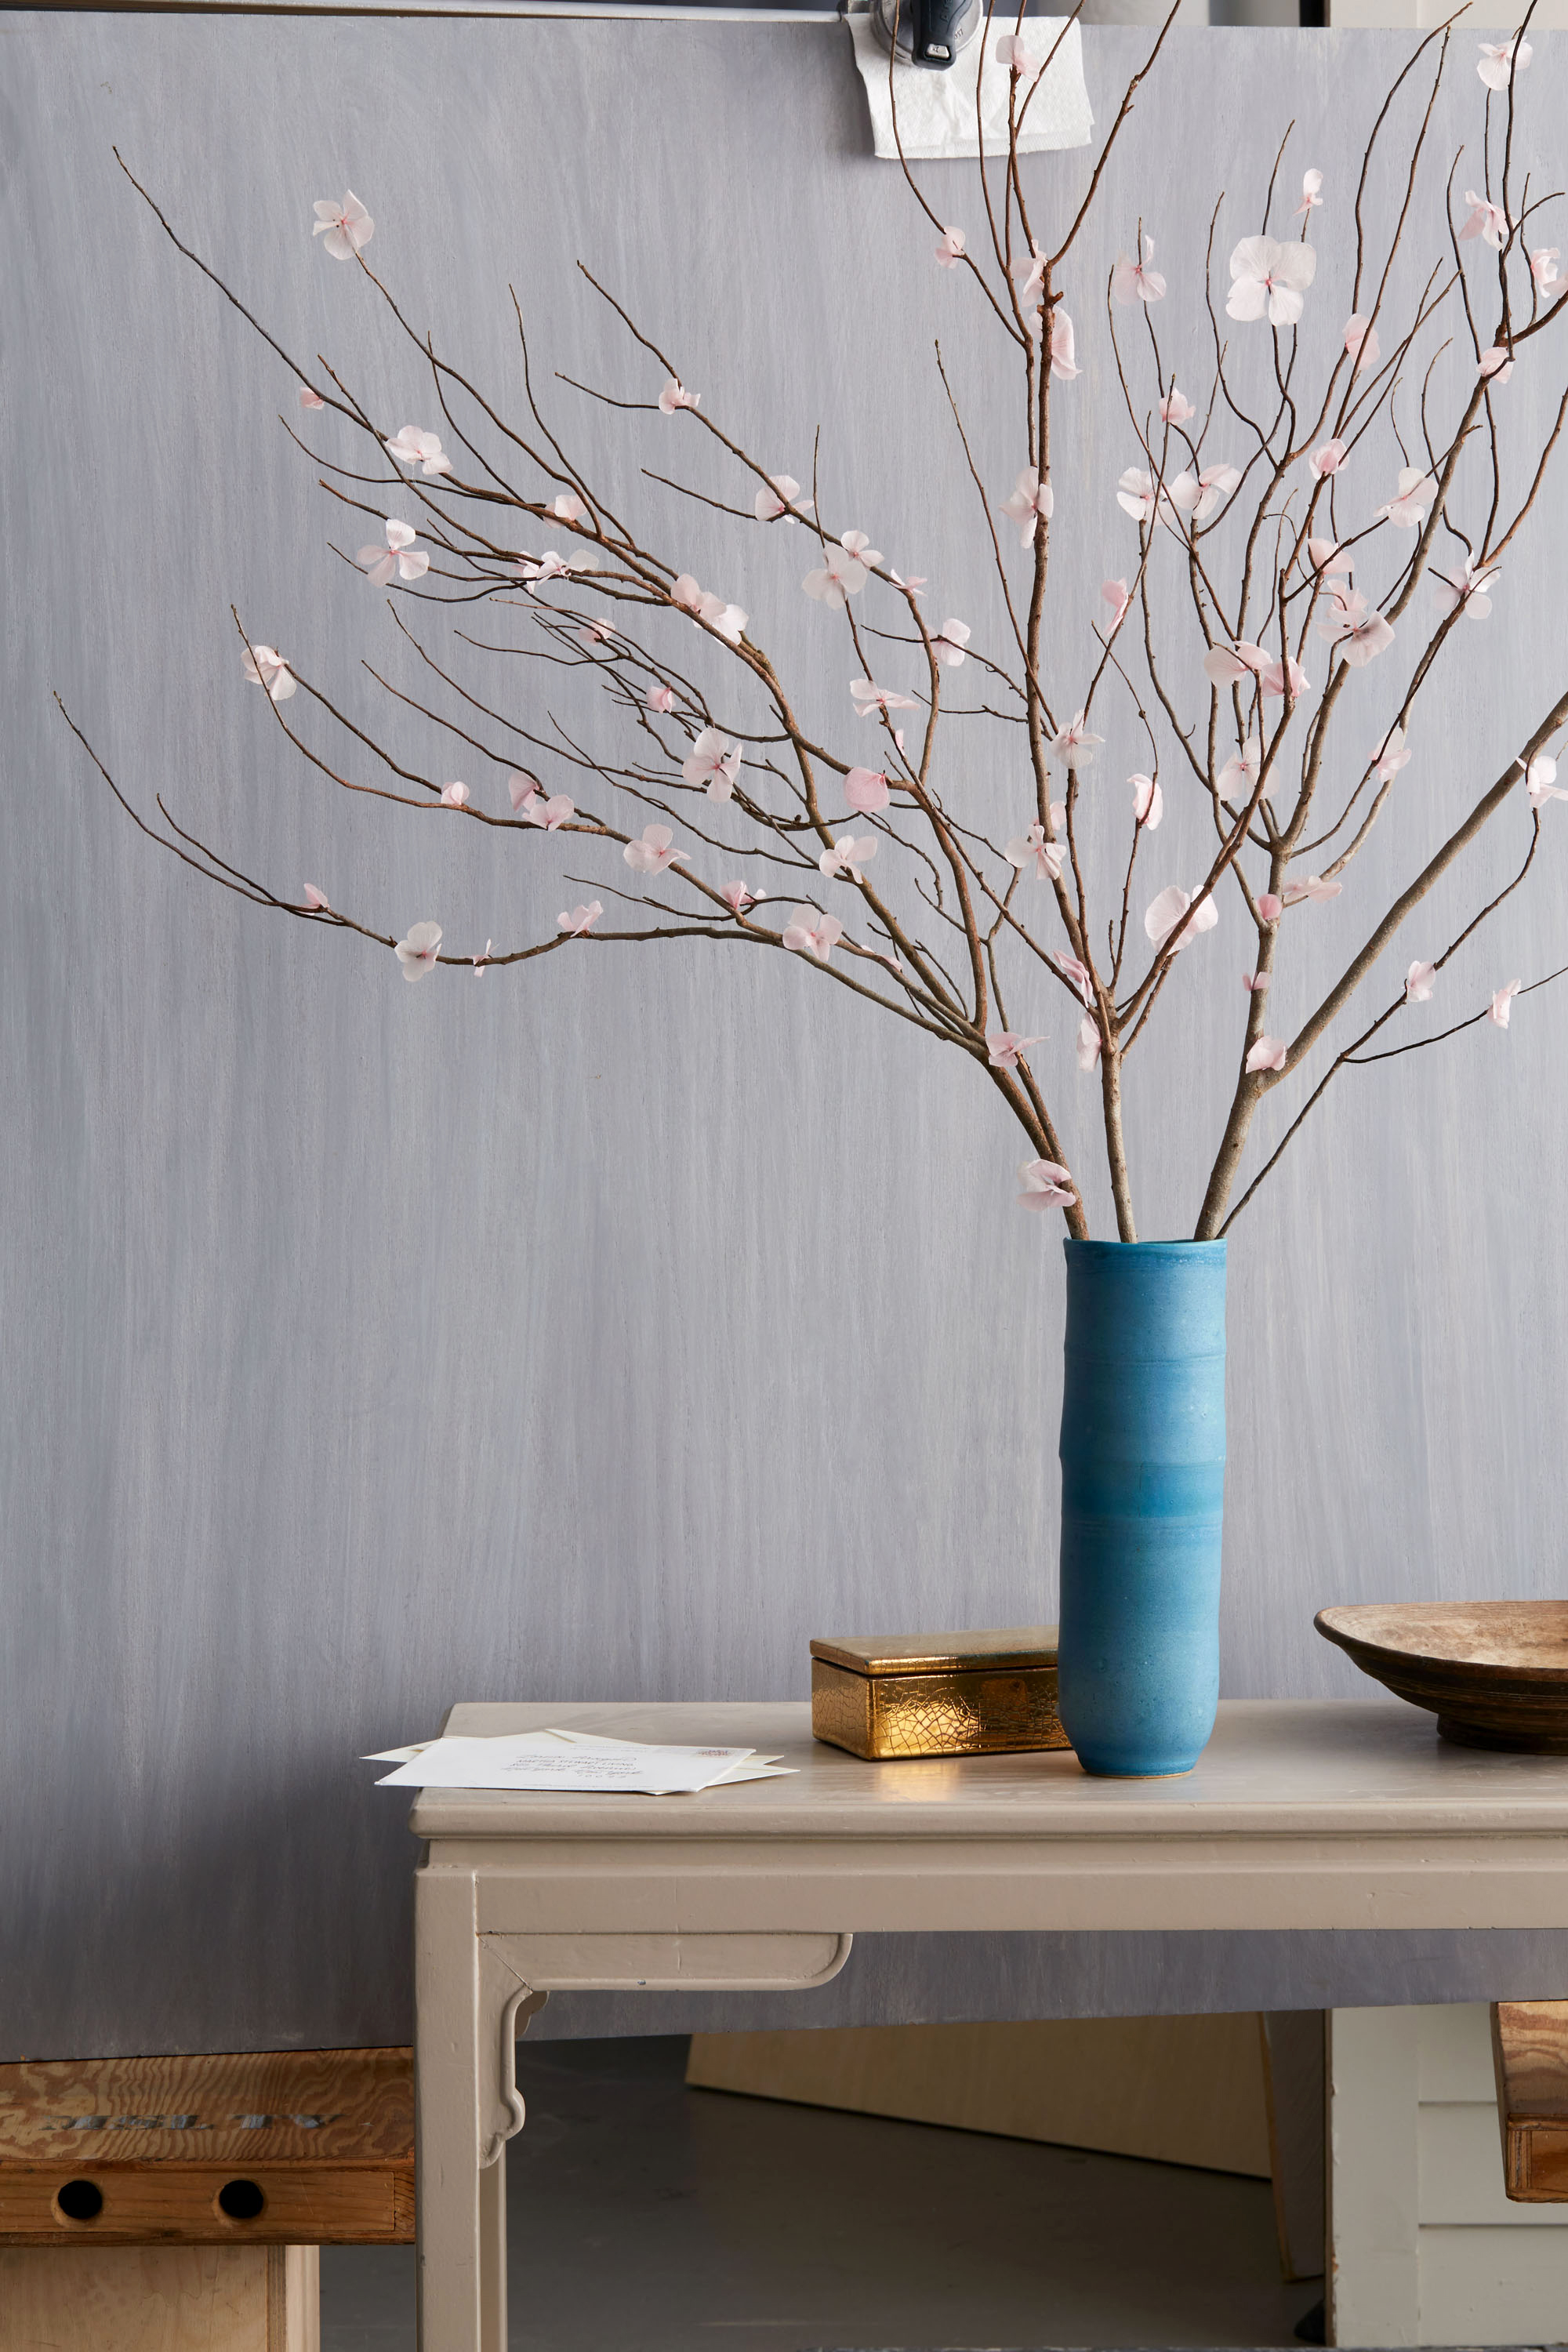 dried flower branches in a blue vase